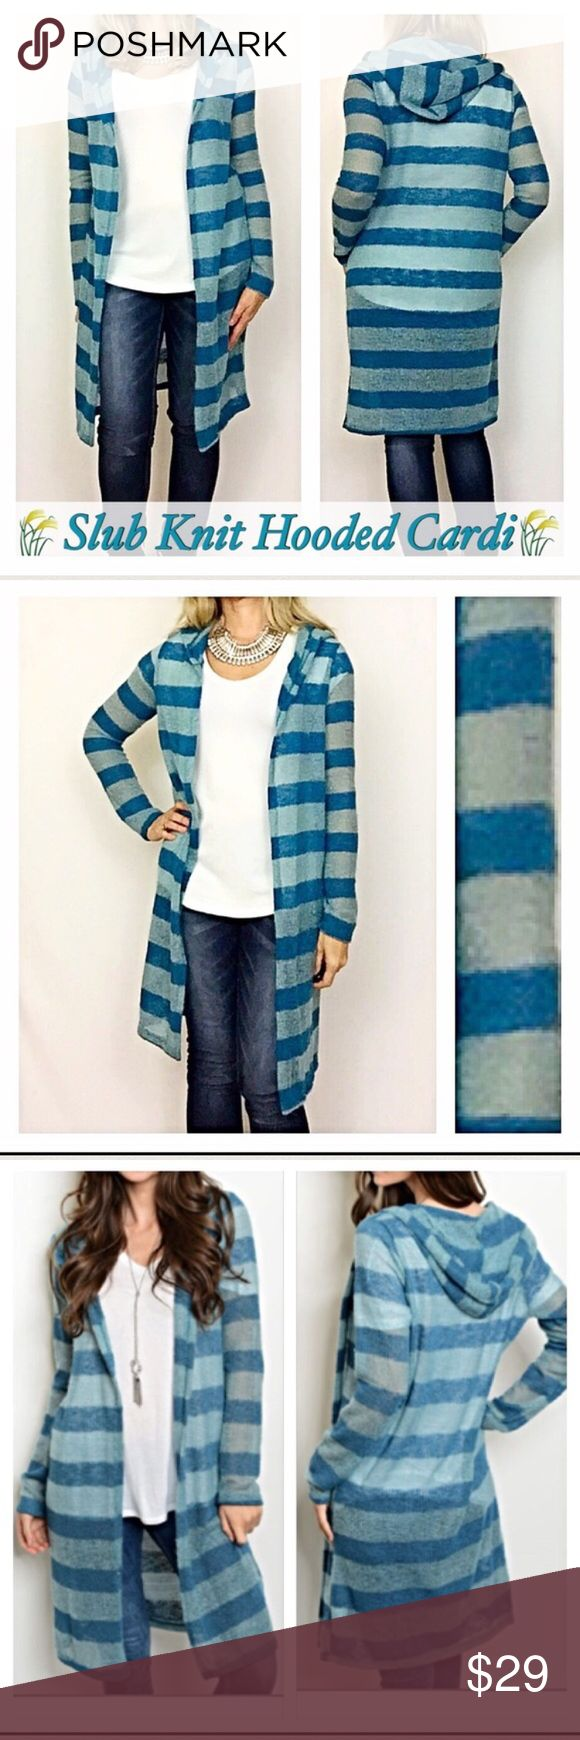 """Loose Knit Sweater Striped Hooded Lightweight S M Ahhh love a fun, cozy cardigan sweater❣️Such an adorable slub loose knit sweater 50% acrylic/50% polyester in striped shades of teal blue. Perfect with leggings or jeans. Hooded & lighweight. Be cute & cozy💙  Small 2/4 length 40"""" Medium 6/8 length Sweaters"""